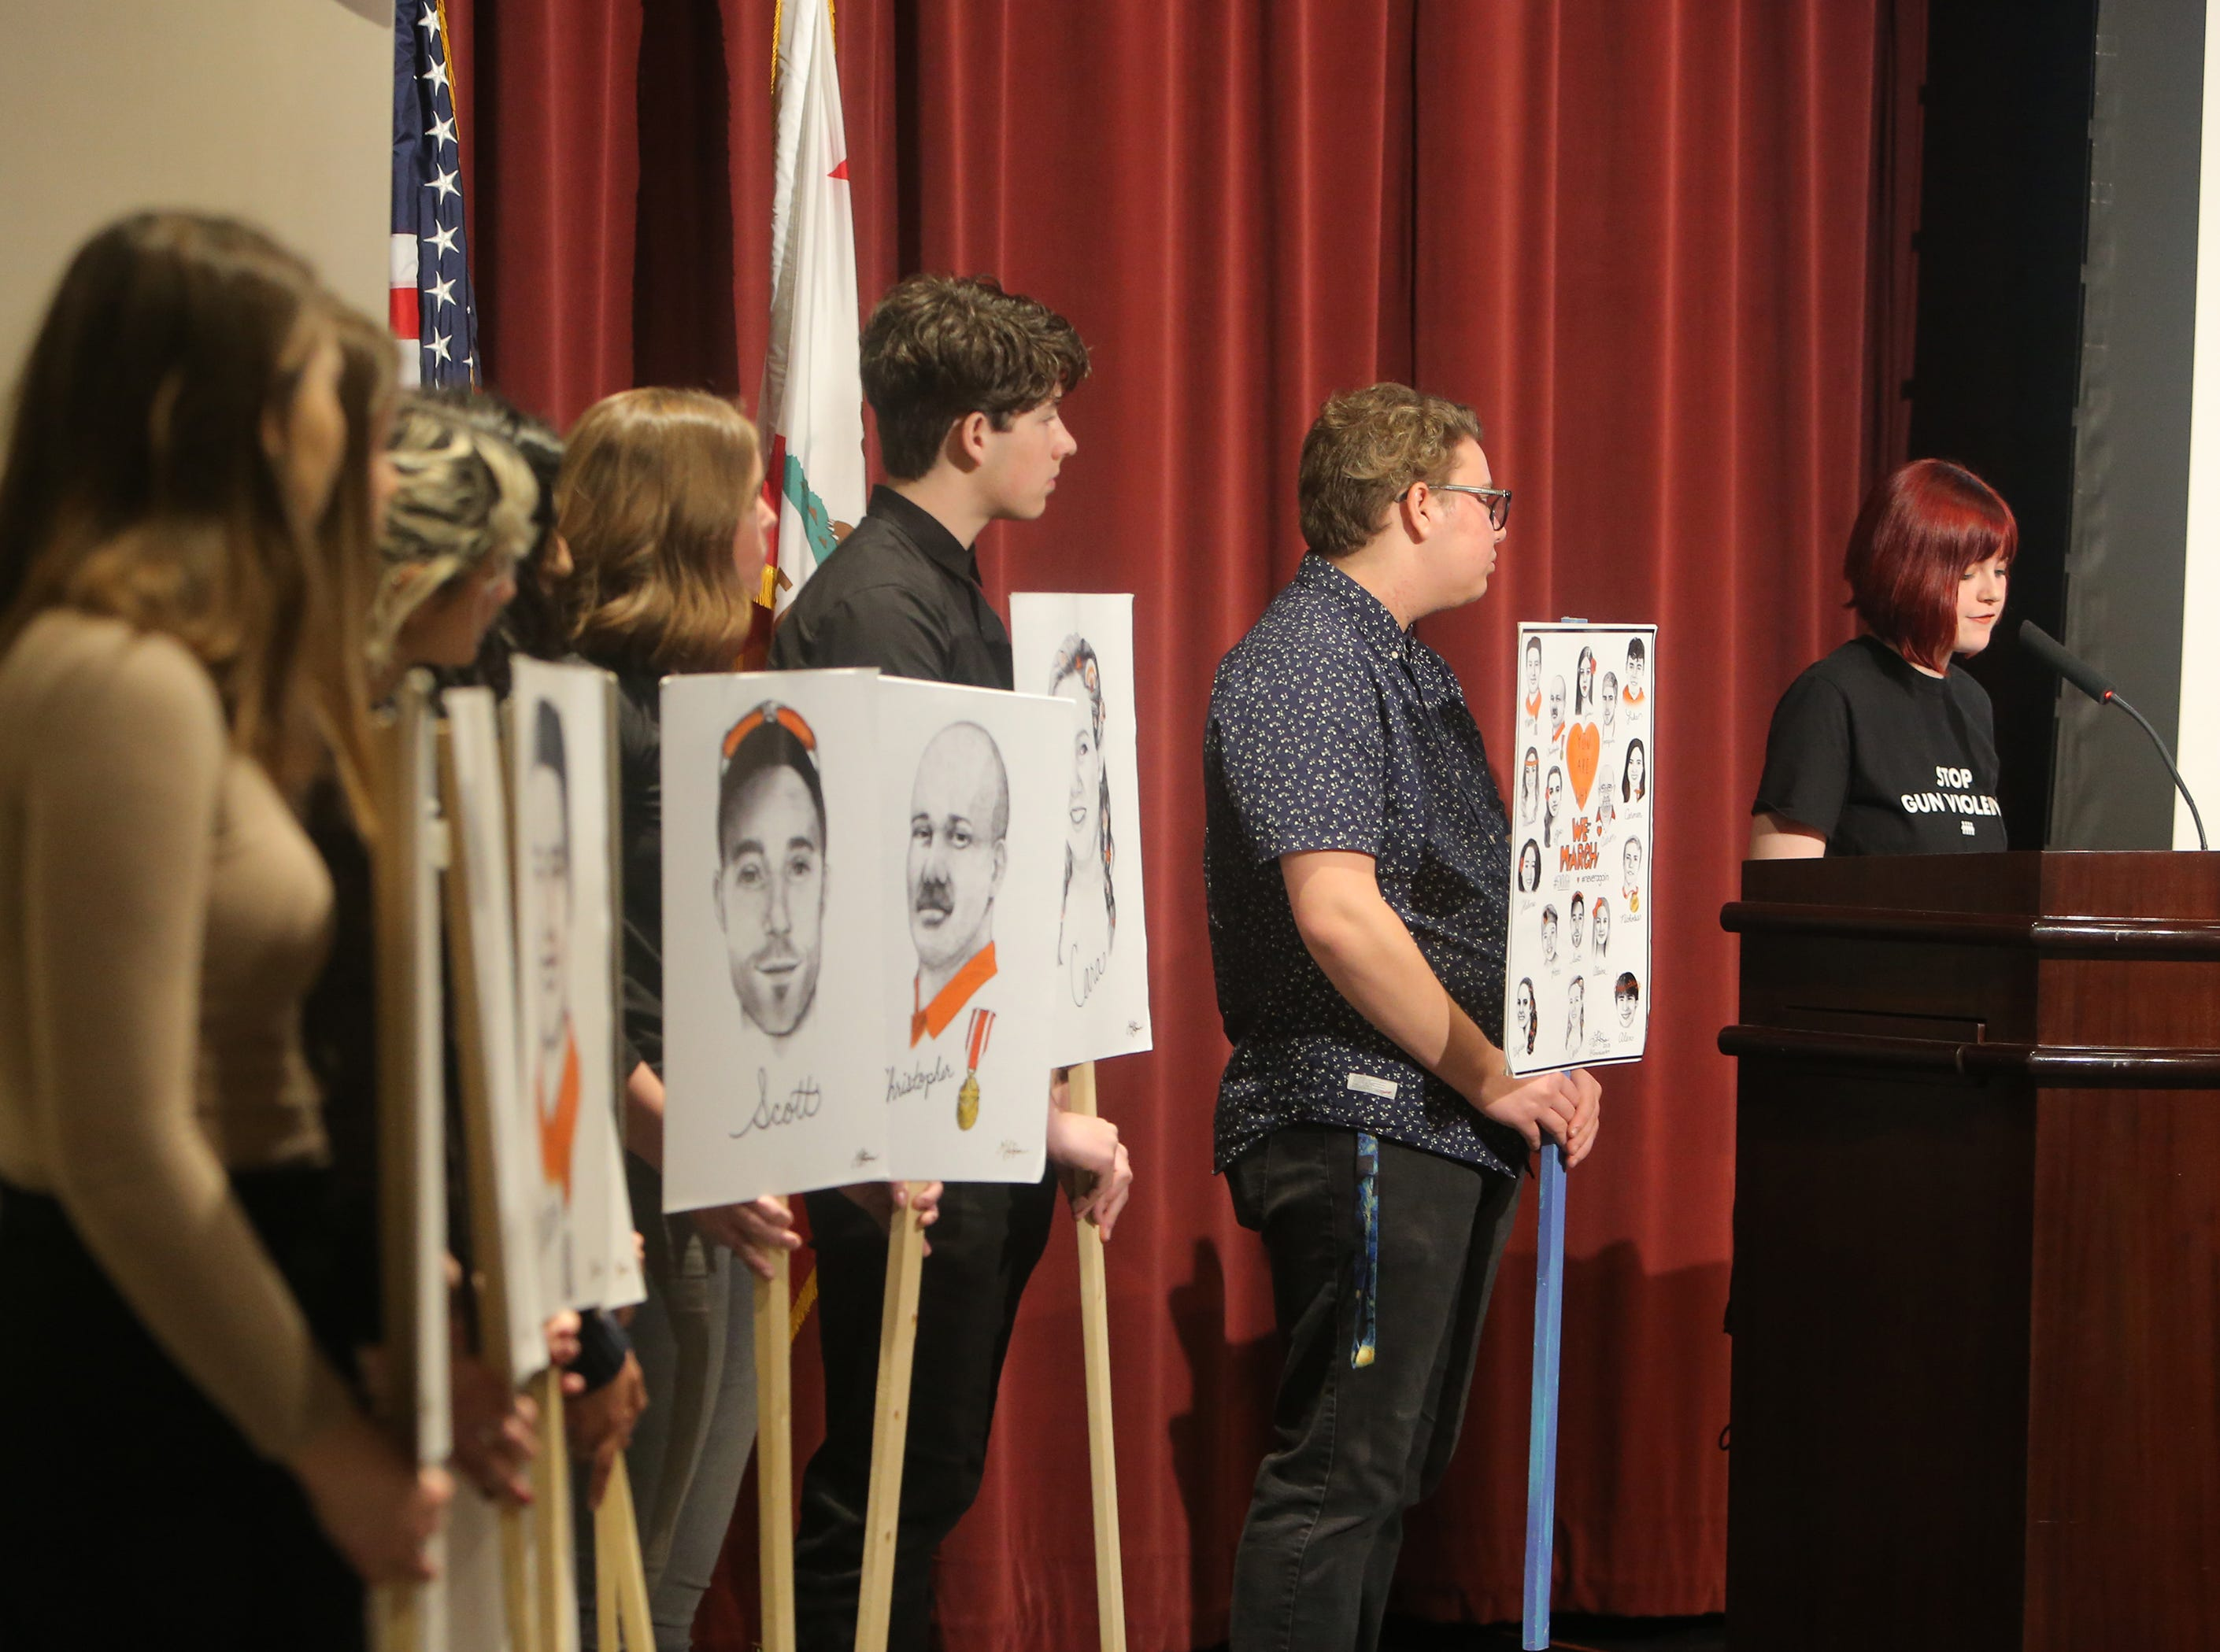 Gracie Pekrul, 17, of Simi Valley, speaks during a forum on gun violence held Sunday at Westlake High School in Thousand Oaks. Students from the Conejo Valley held up portraits Pekrul created portraying the victims of the school shooting in Parkland, Florida.